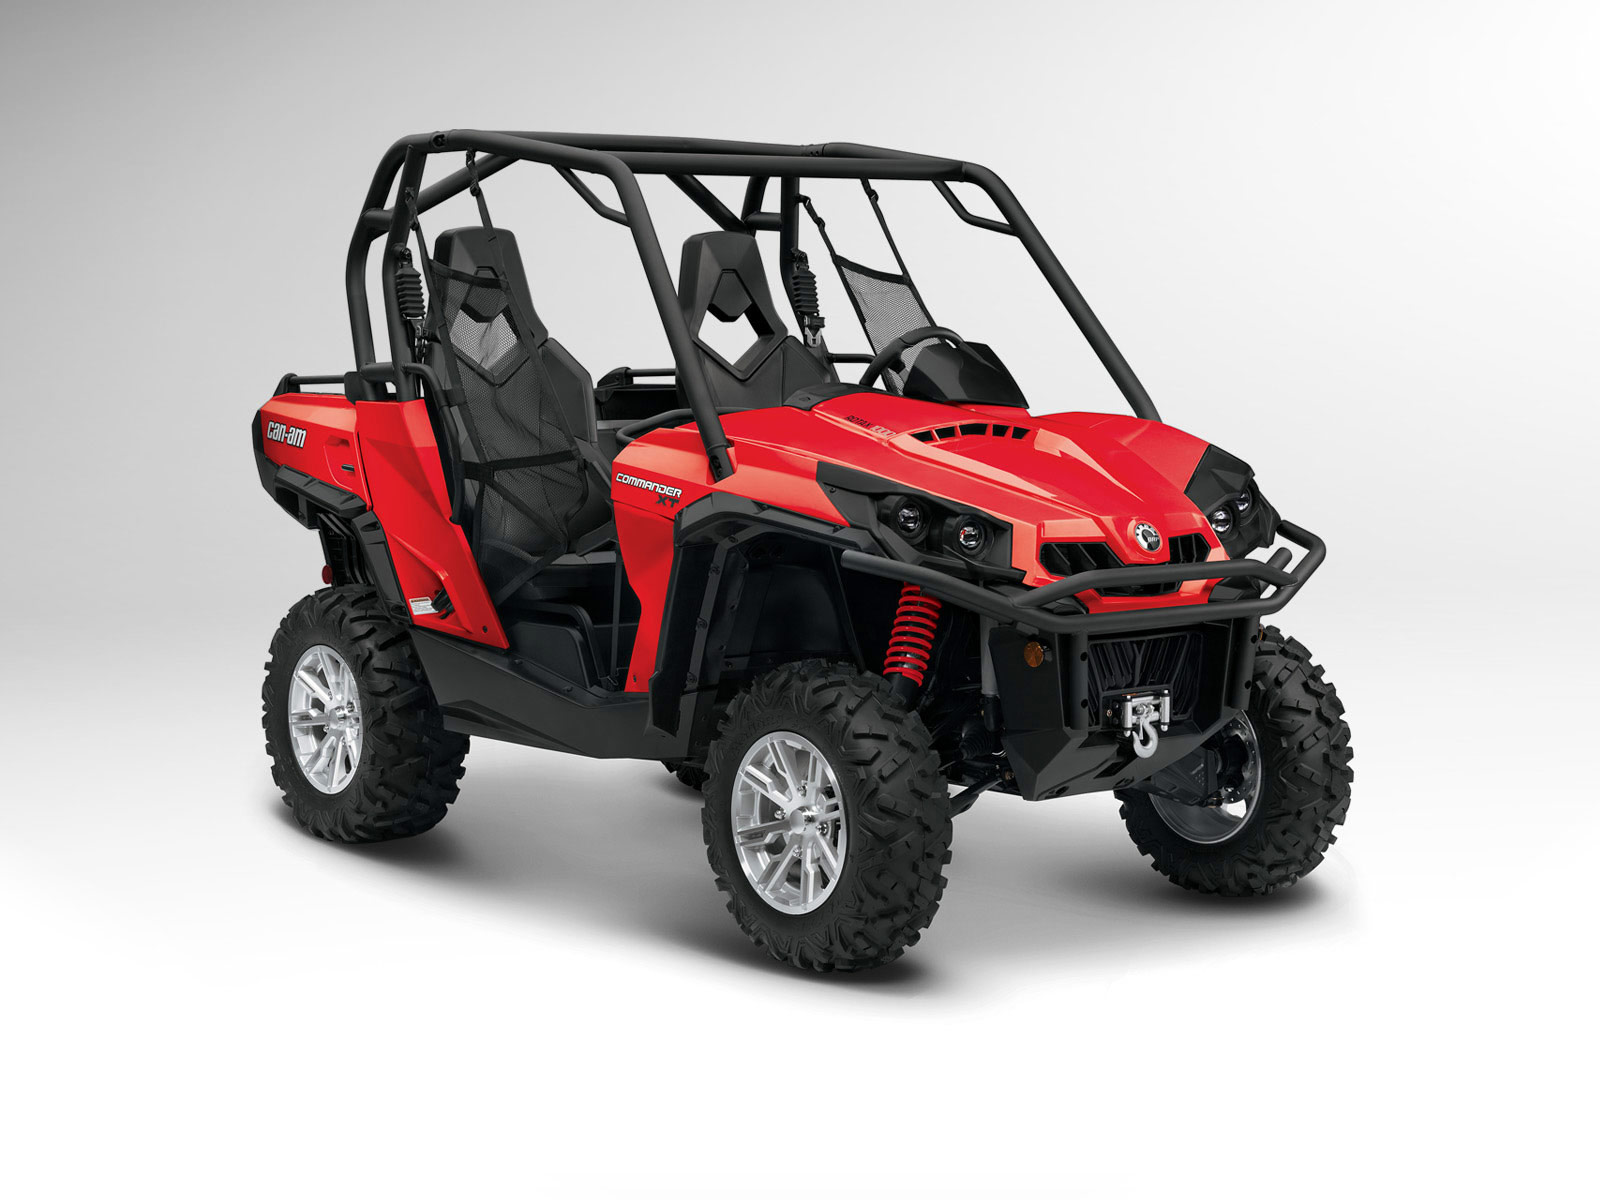 2012 Can-Am Commander 1000 XT ATV pictures 2